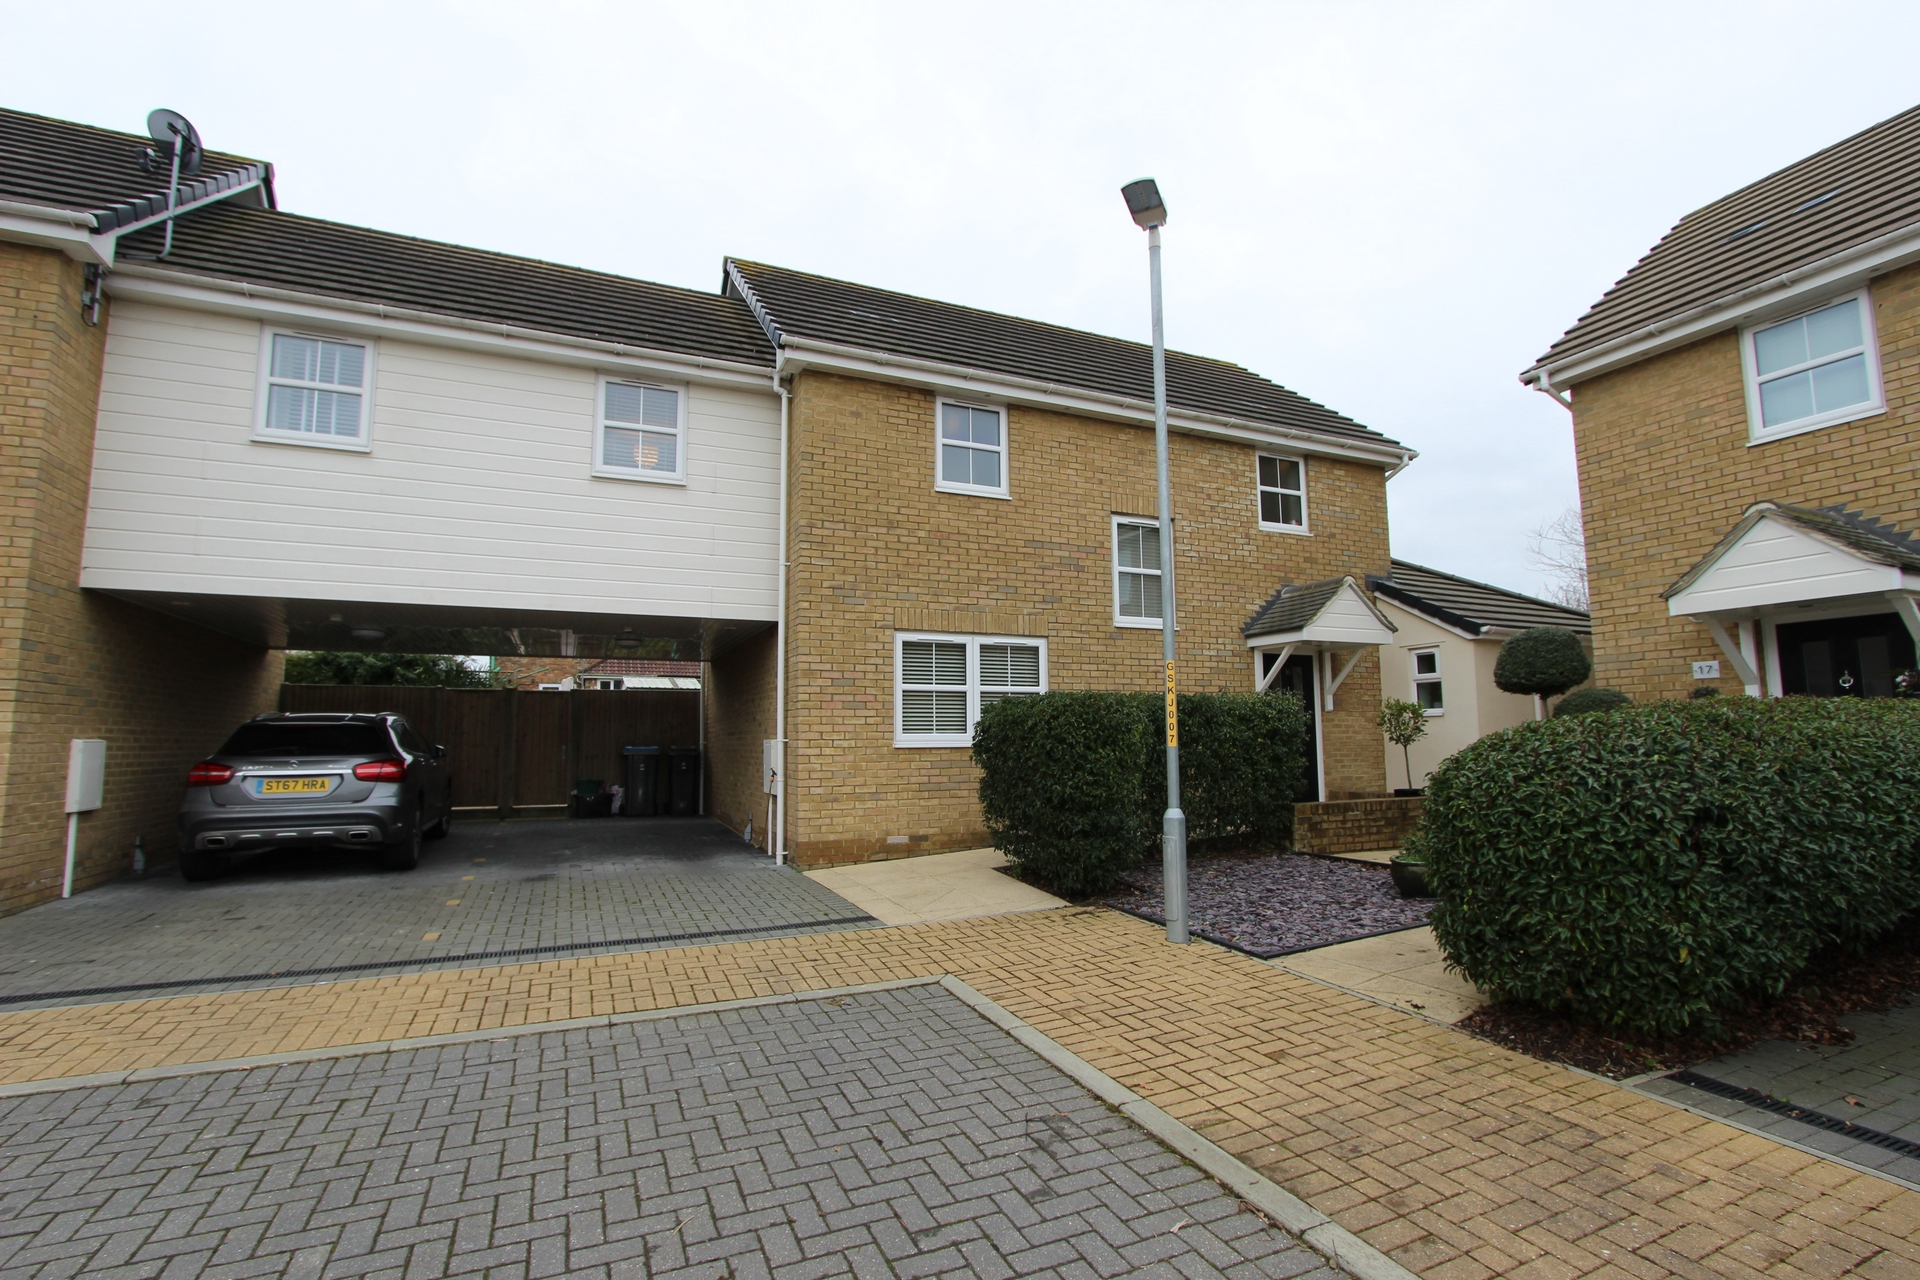 St James Close  Deal  CT14